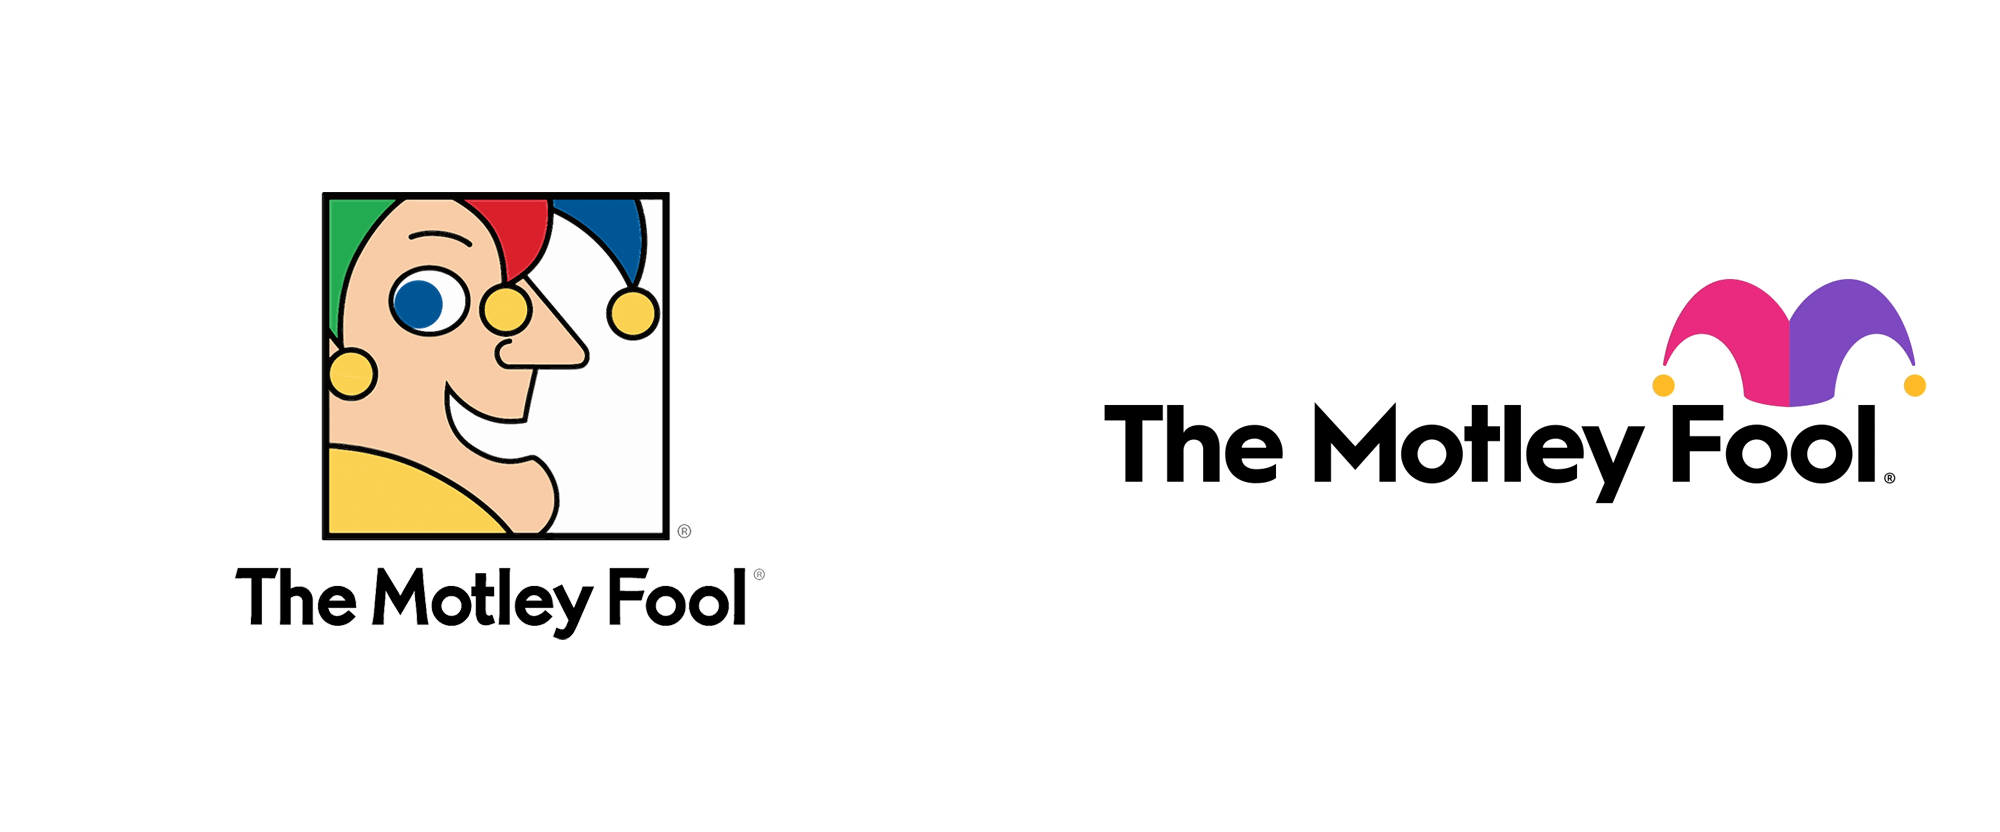 New Logo and Identity for The Motley Fool by Pentagram